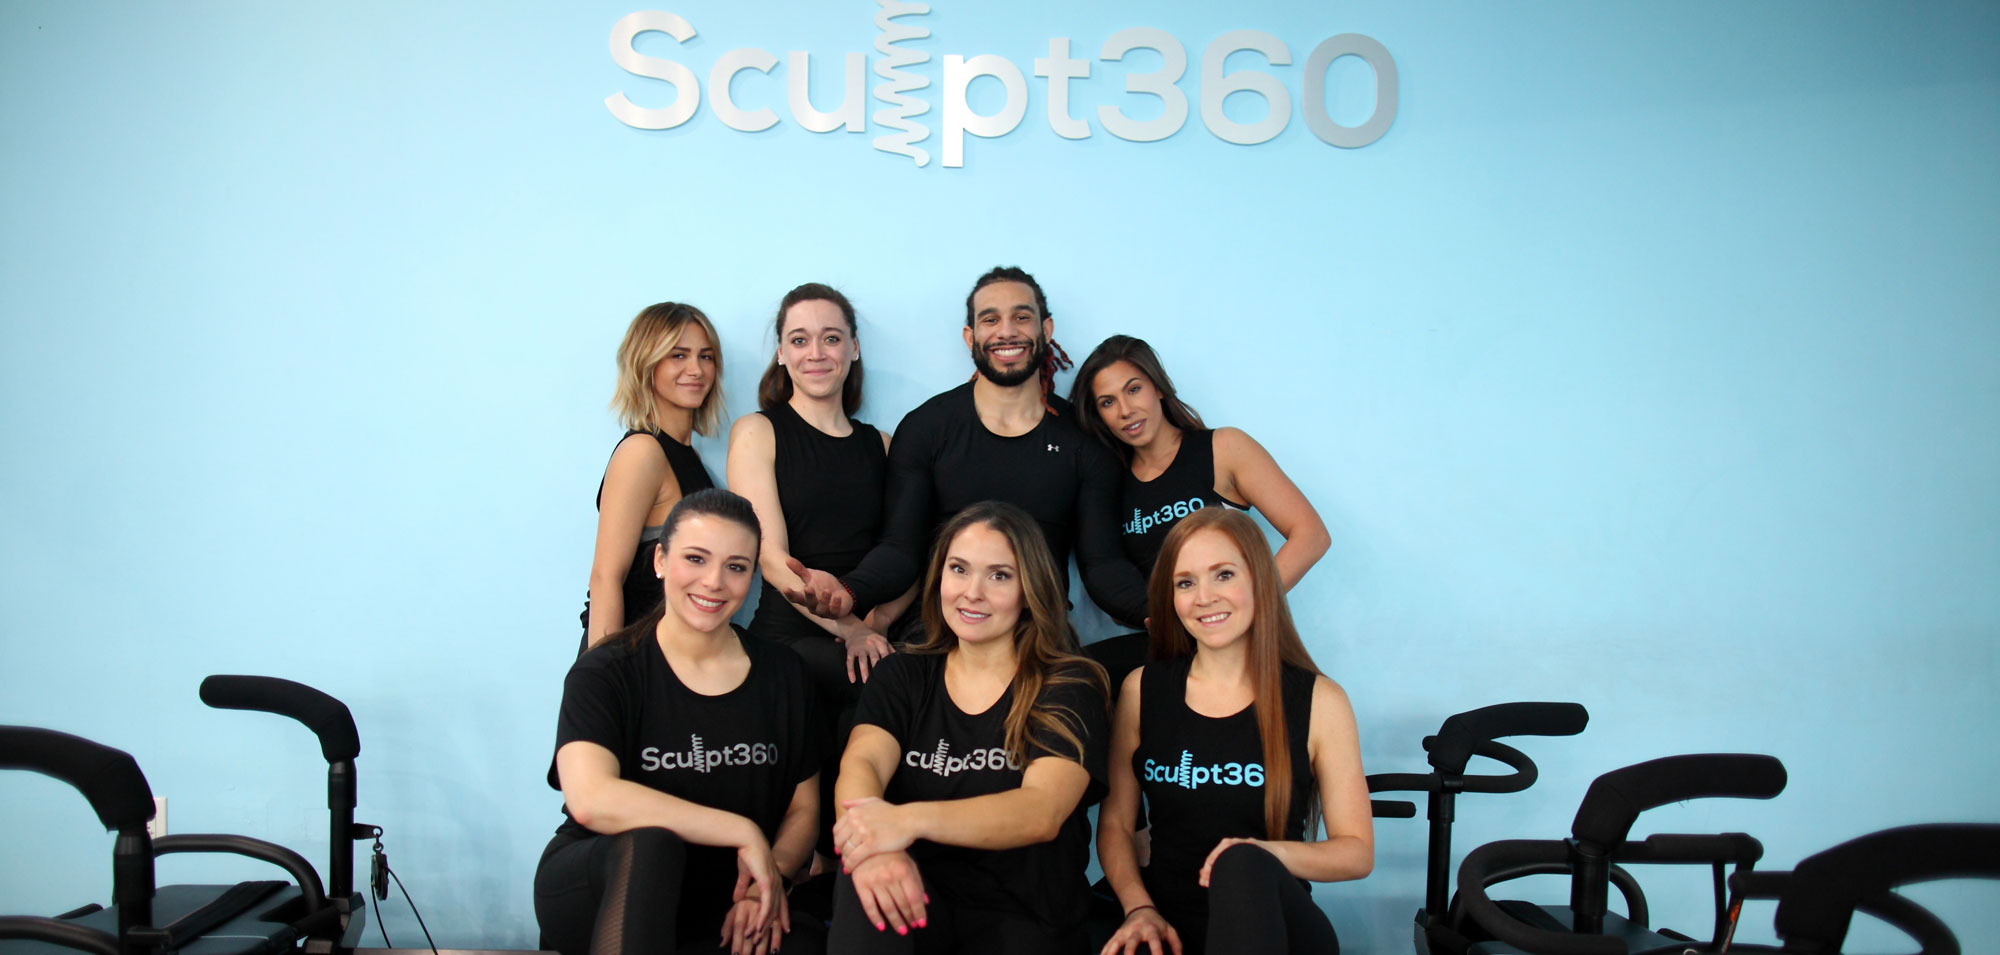 the sculpt360 team in the studio